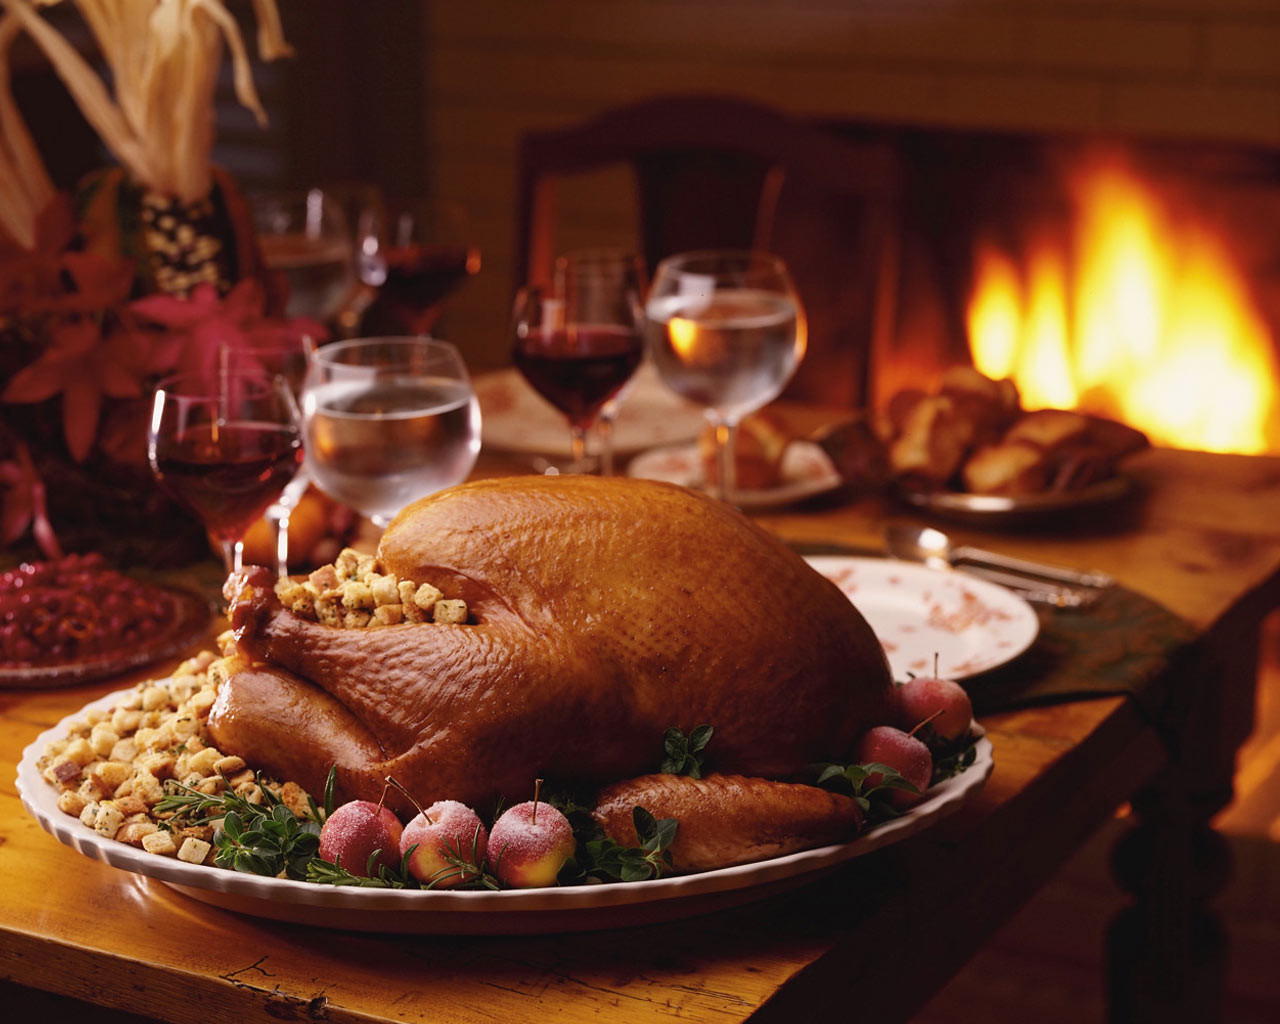 Pictures Of Thanksgiving Turkey Dinner  The Cost of Thanksgiving Dinner